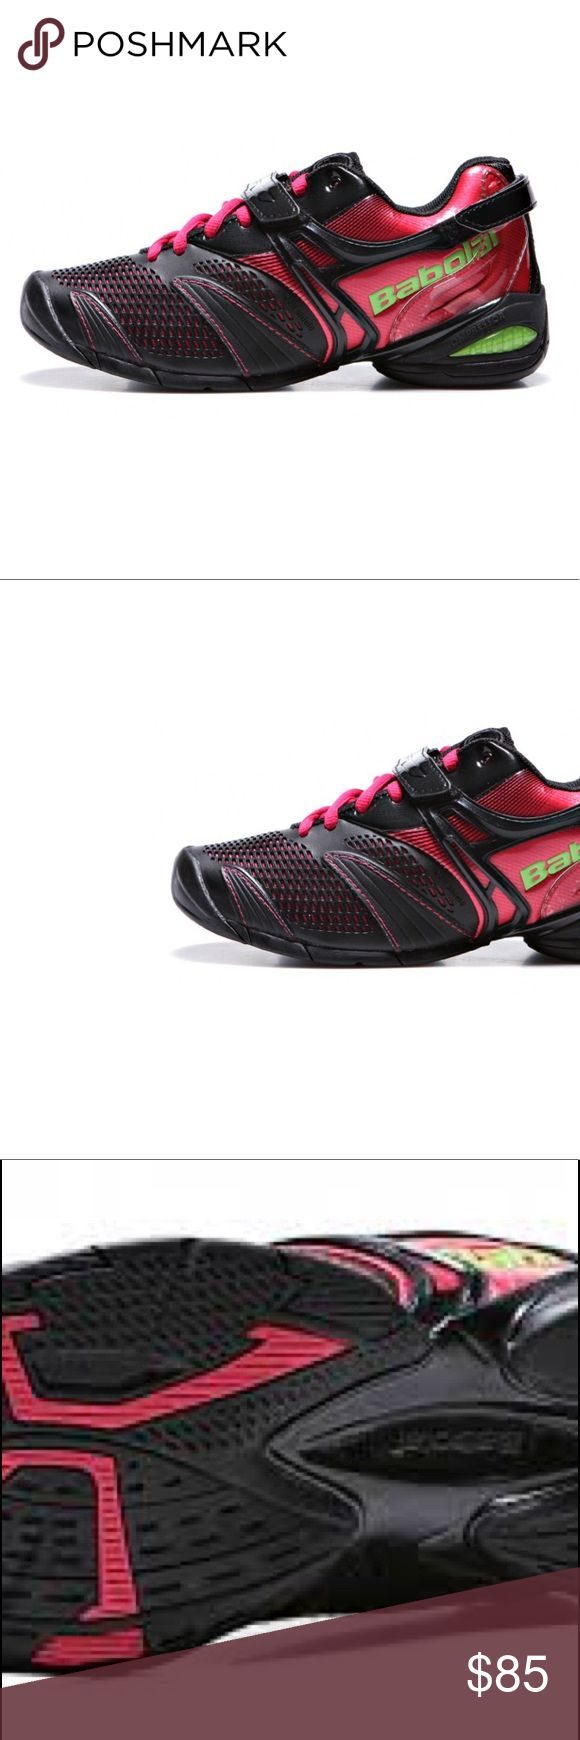 Babolat Sneaks Propulse Lady 3 Babolat tennis shoes New-Never Worn-Box included Babolat Shoes Sneakers